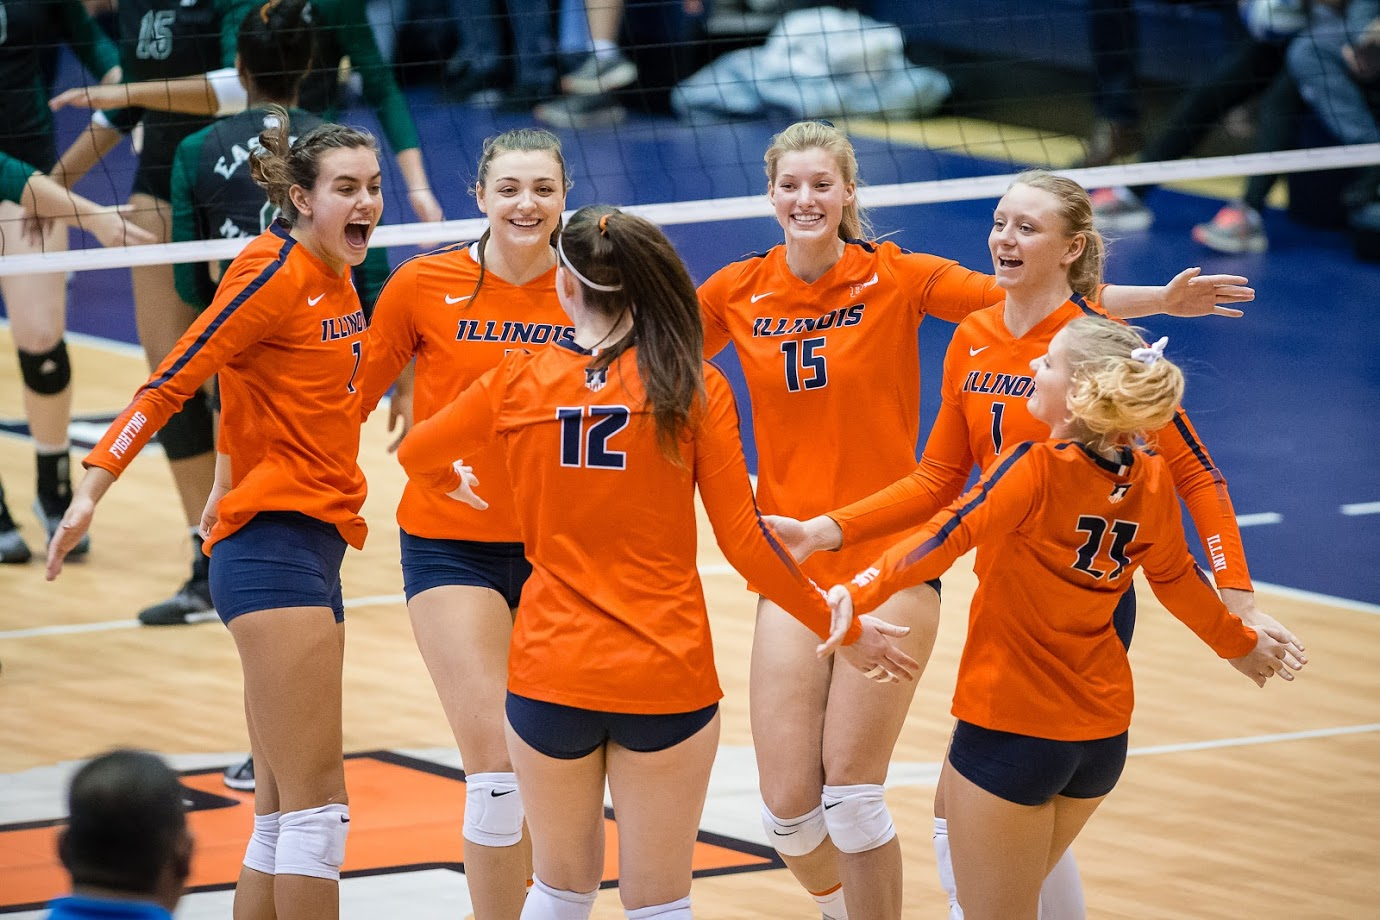 The Illini celebrate after scoring a point during the match against Eastern Michigan in the first round of the NCAA Tournament at Huff Hall on Friday, Nov. 30, 2018. The Illini won 3-0.